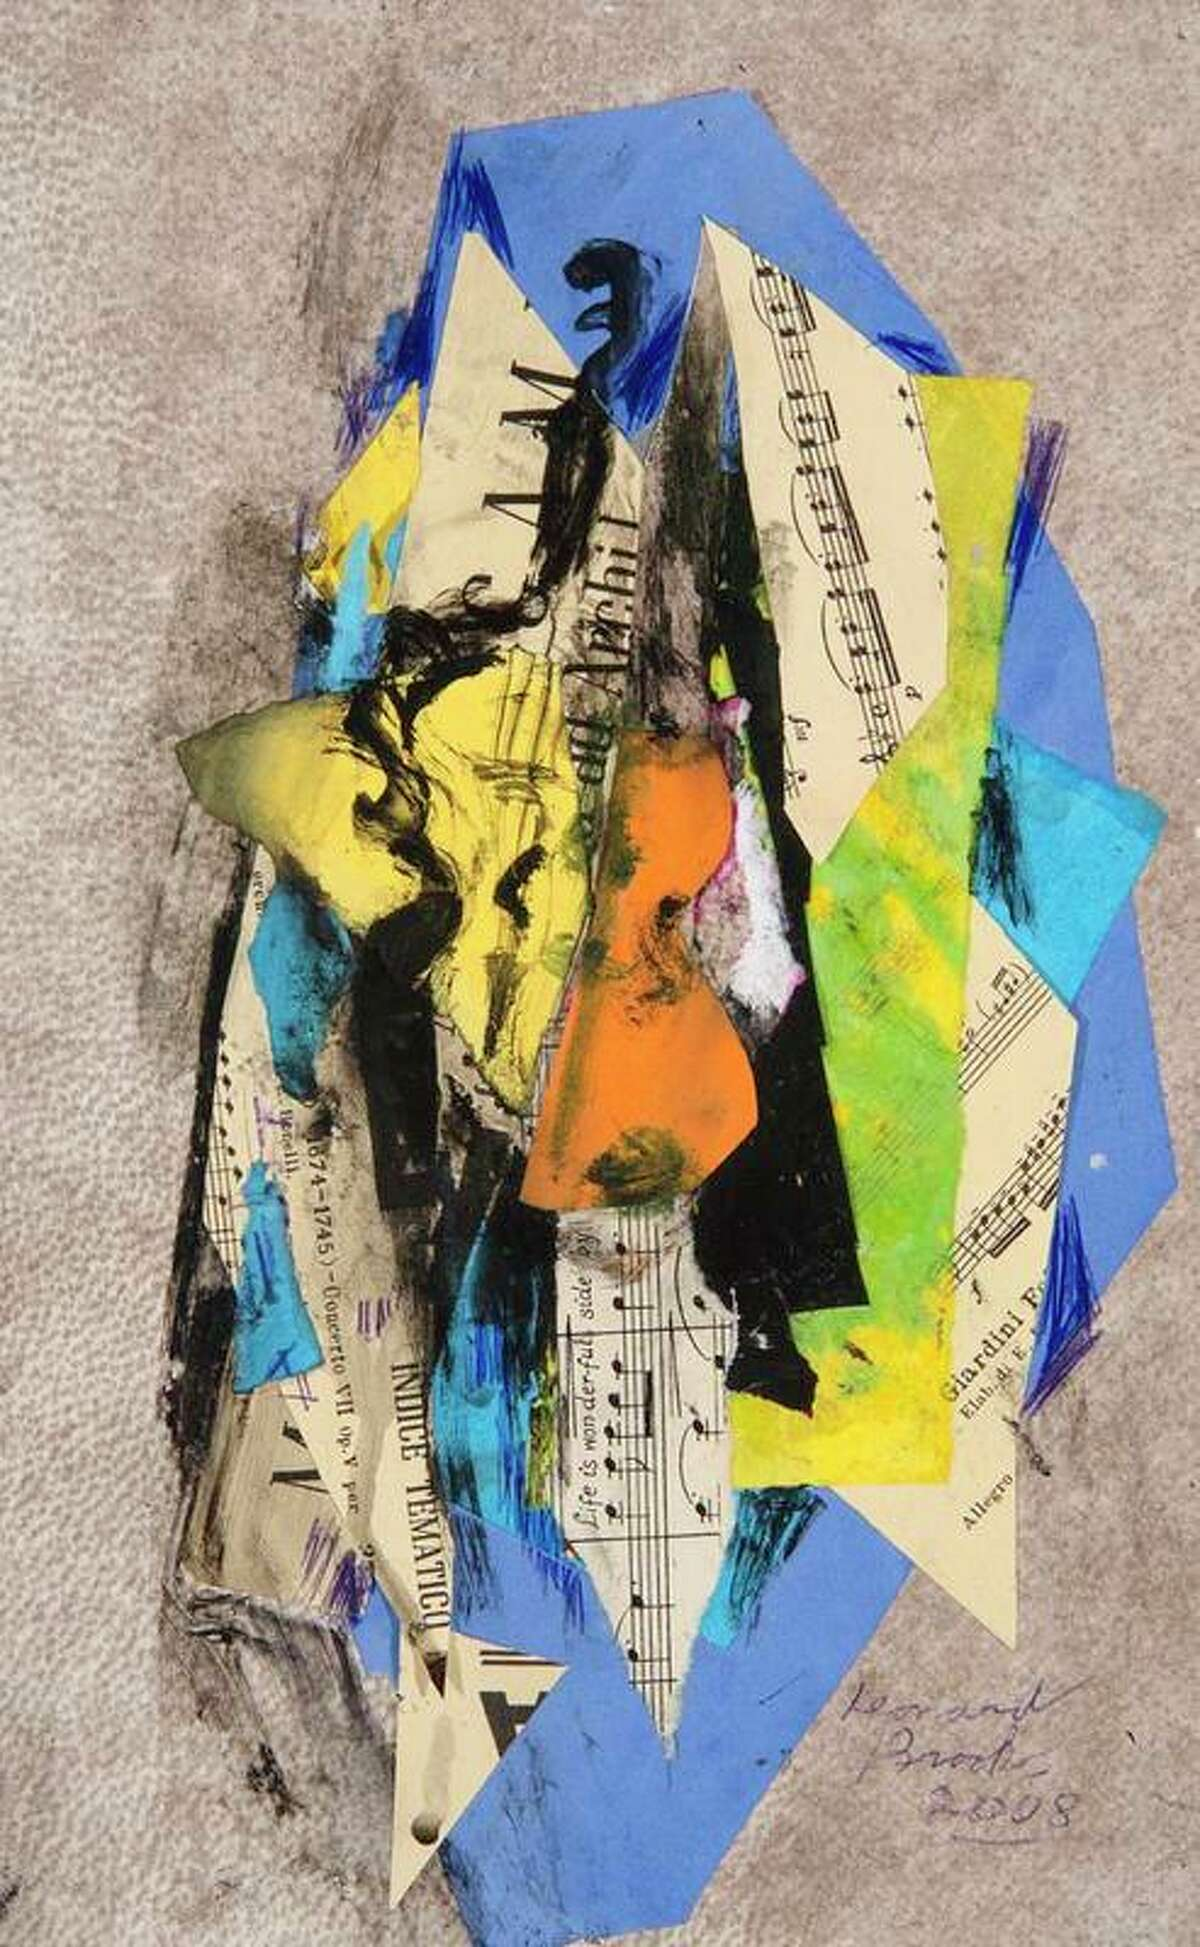 """""""Untitled,"""" a collage by Canadian artist Leonard Brooks, is one of a group of artworks, some with music themes, presented to the museum by cellist Gilberto Munguia. Both Brooks and Munguia were part of the artists' colony in San Miguel de Allende, Mexico."""